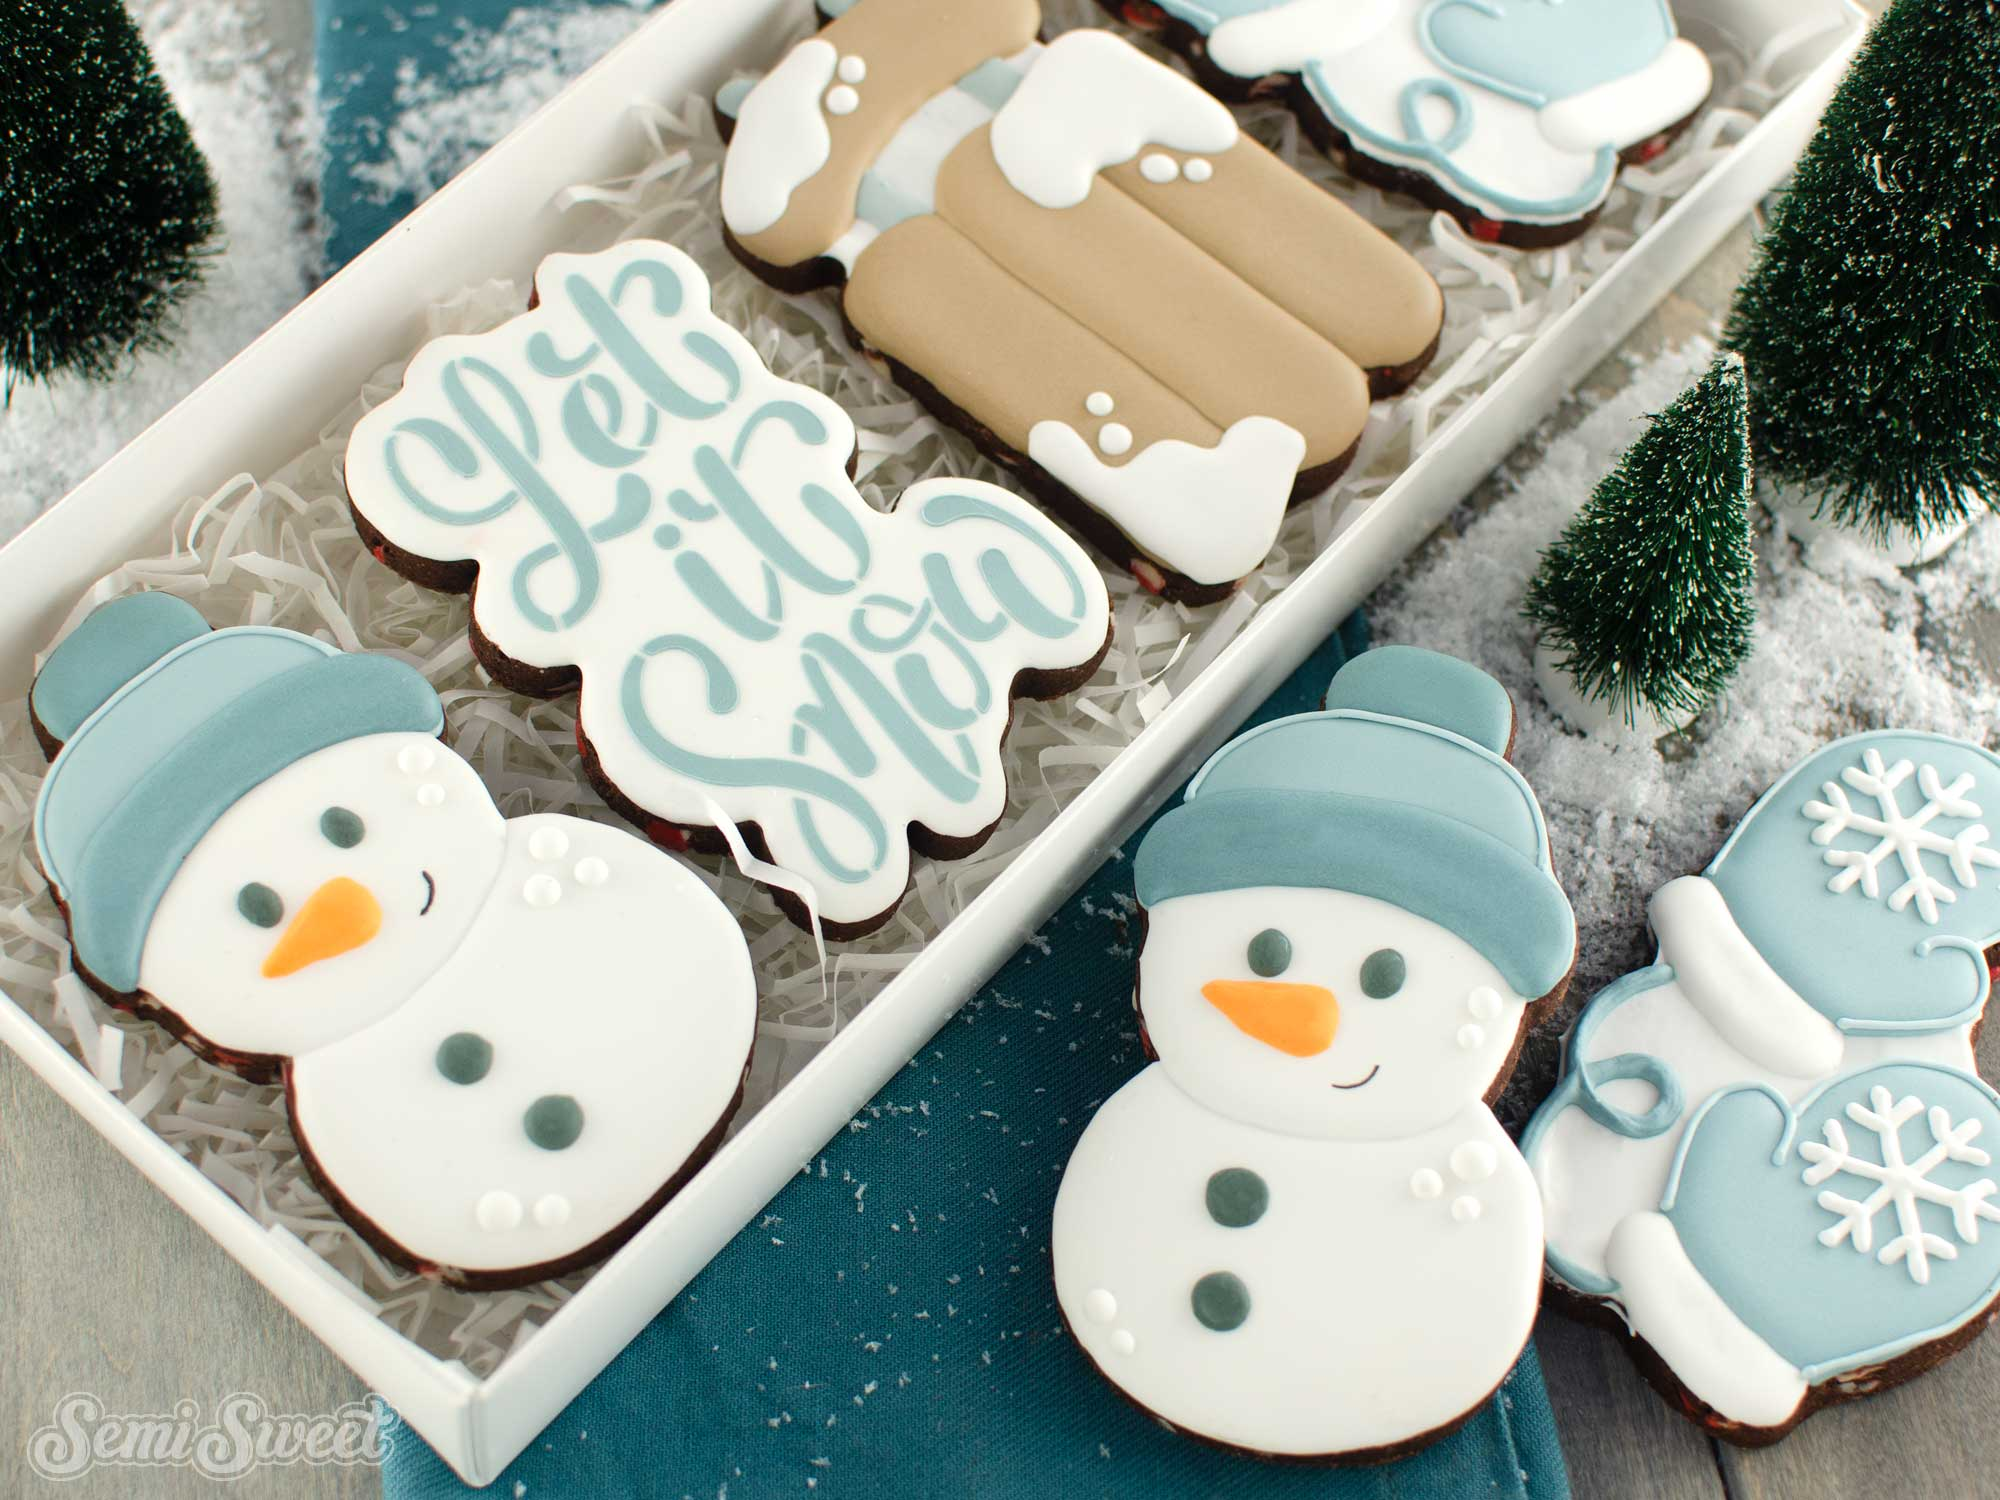 How to Make Simple Snowman Cookies